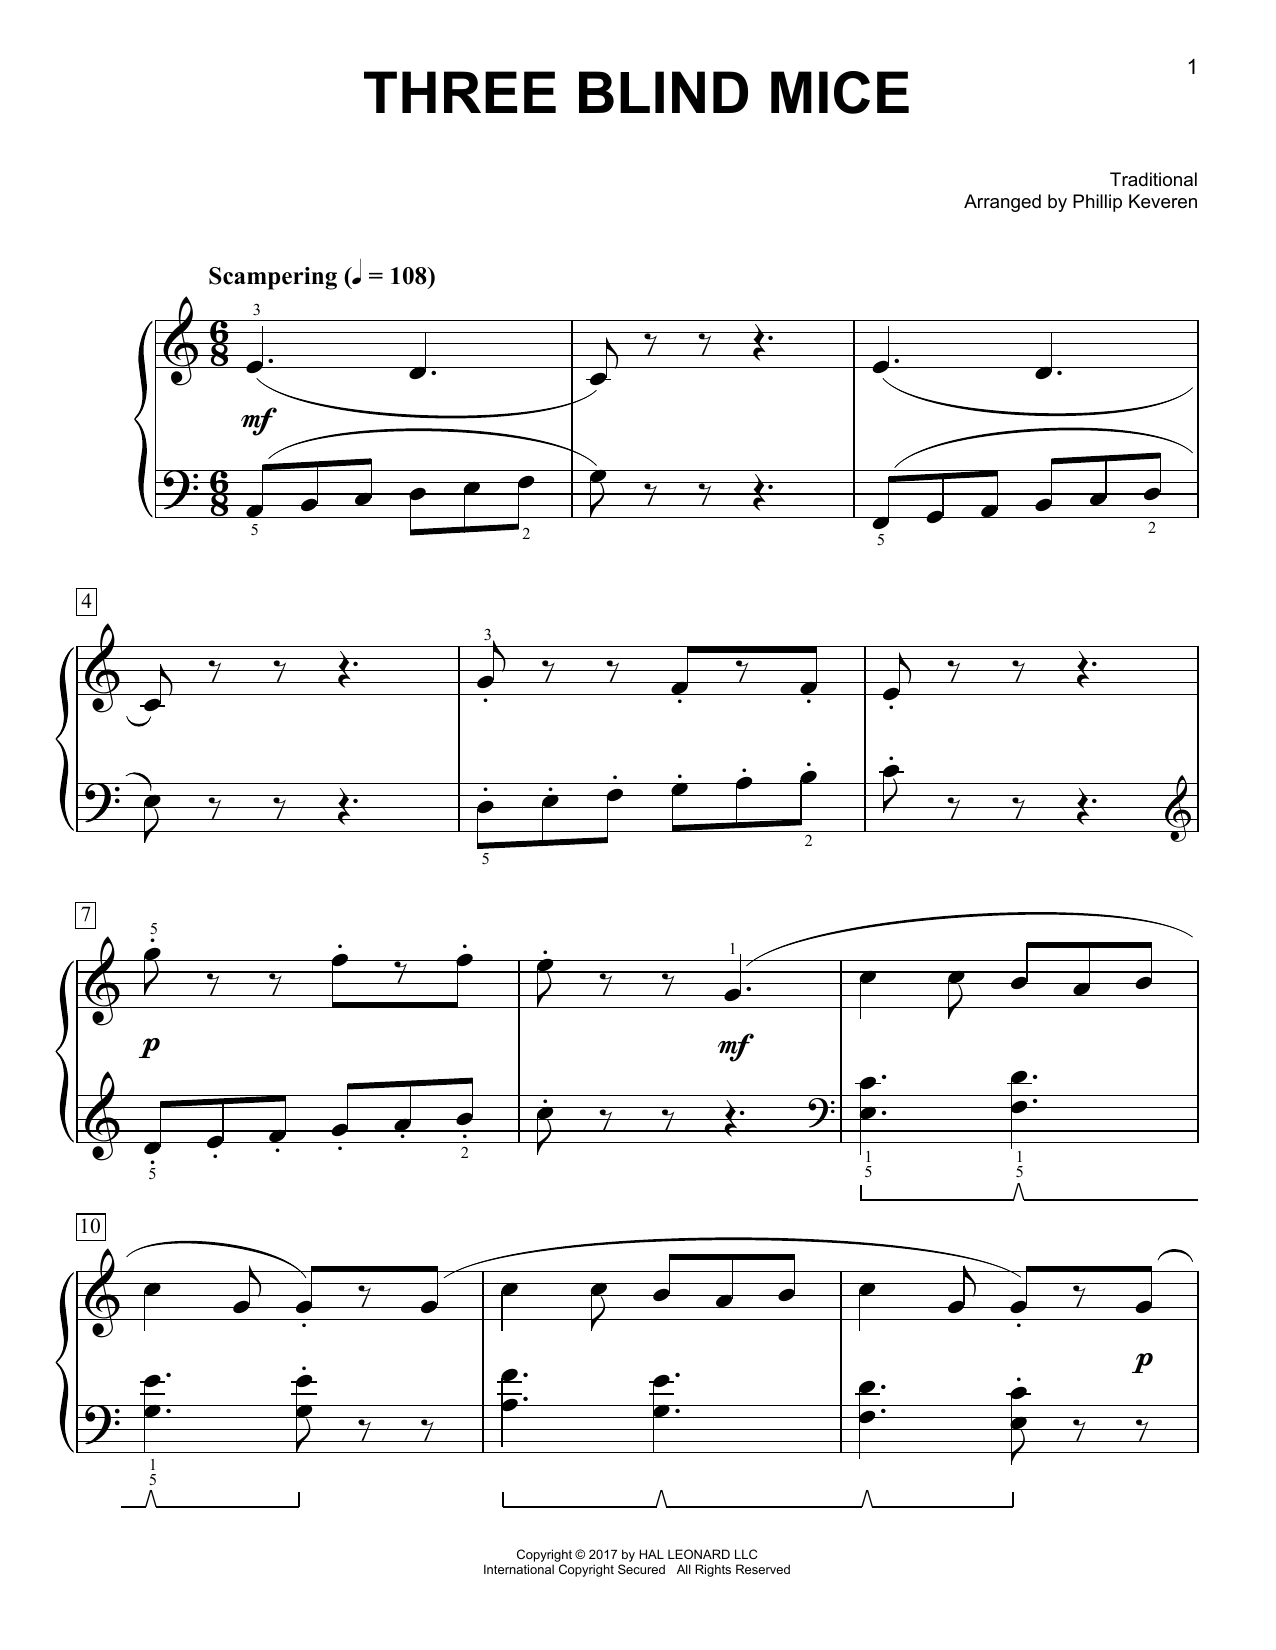 Traditional Three Blind Mice [Classical version] (arr. Phillip Keveren) sheet music notes and chords. Download Printable PDF.